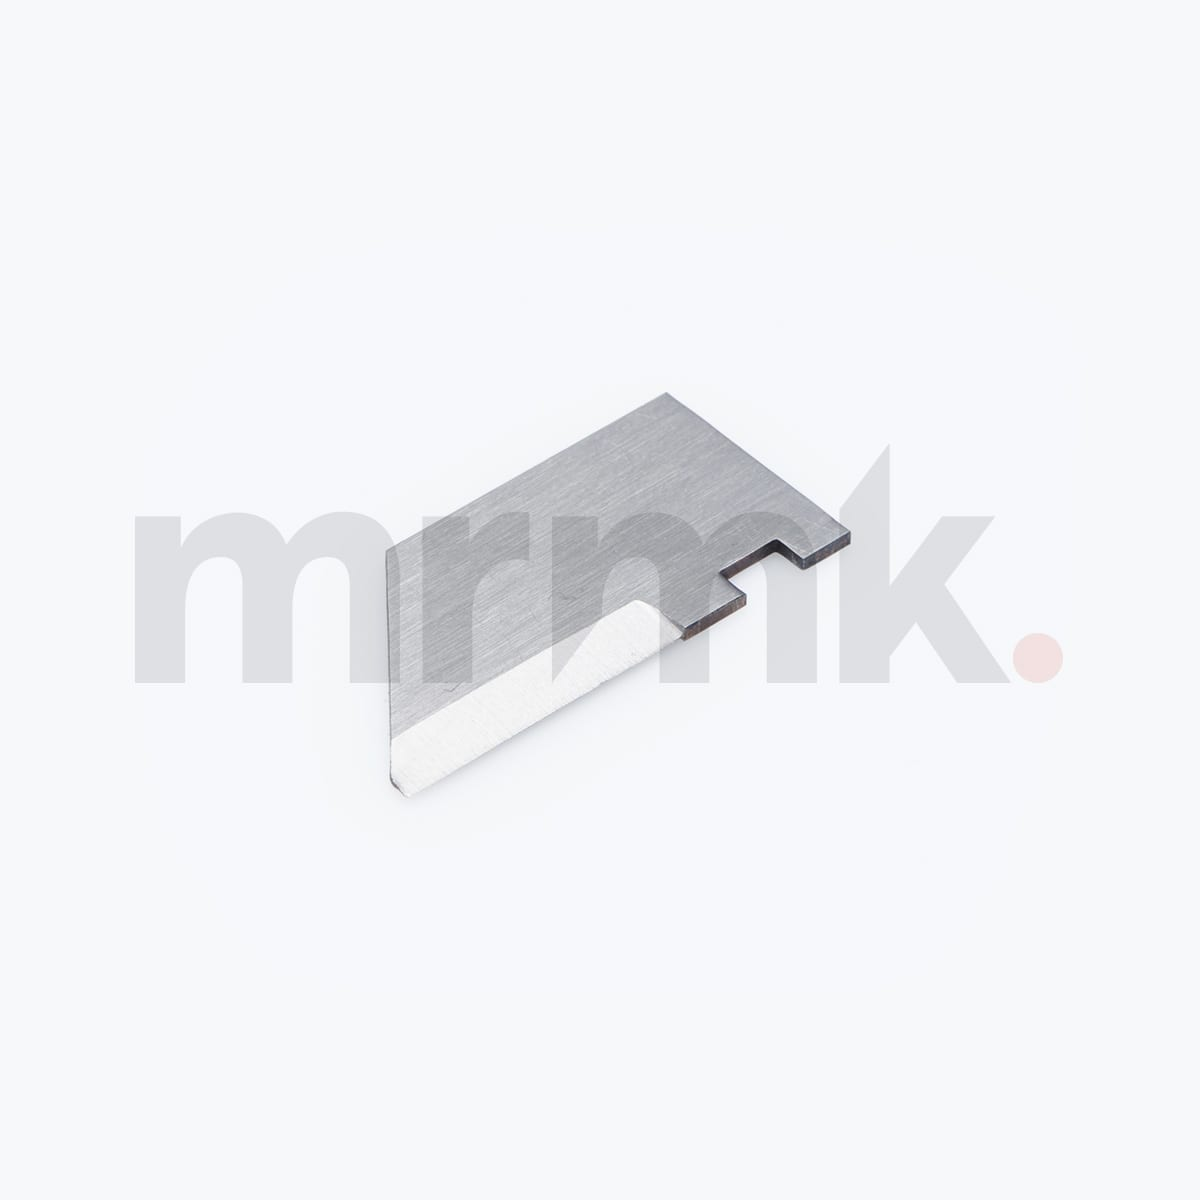 Holac Compatible Blades White Background 2